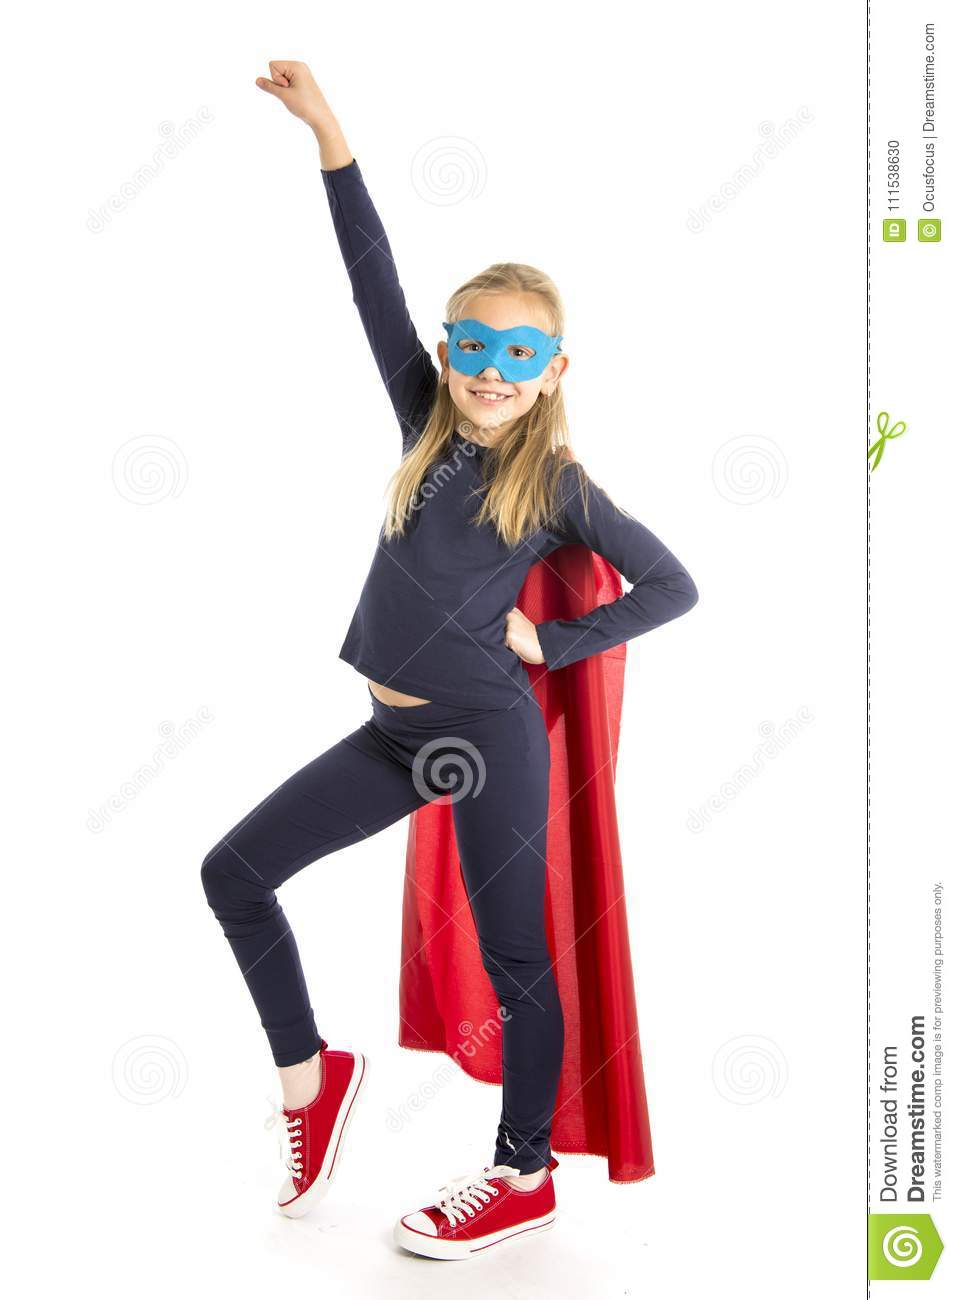 7 or 8 years old young female schoolgirl child in super hero costume performing happy and excited isolated on white background